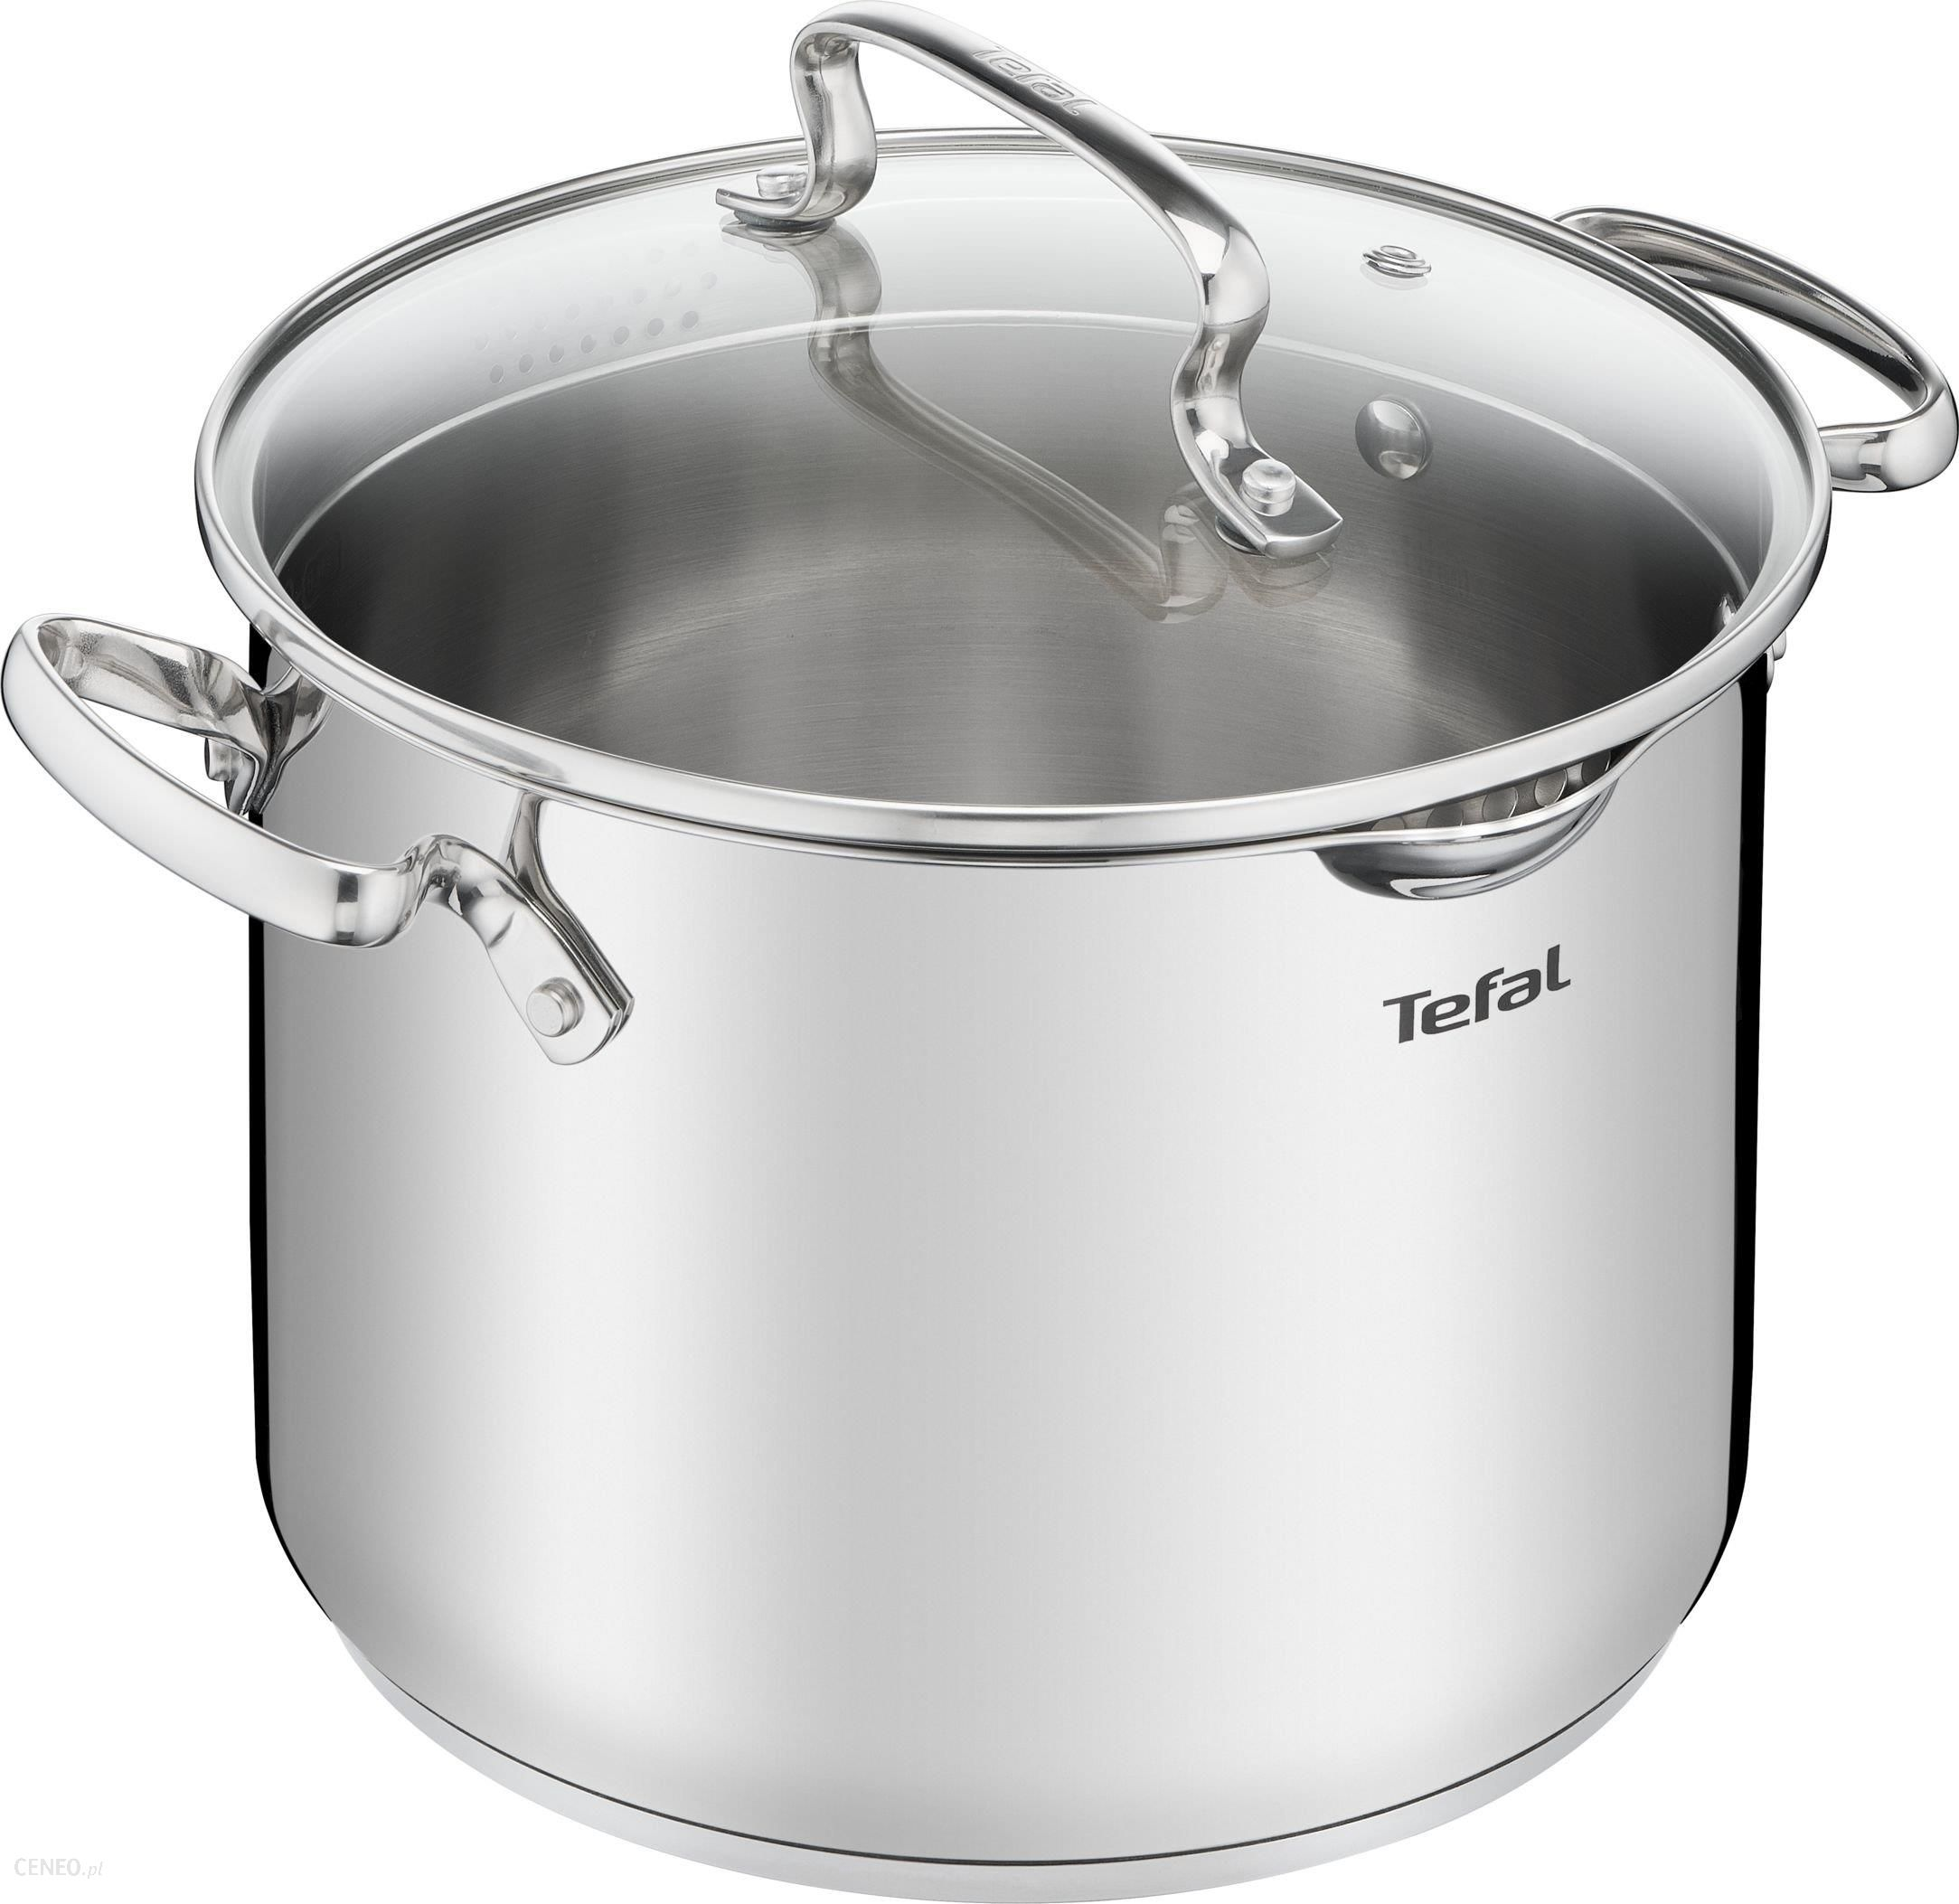 Tefal Duetto+ G7197955 22cm